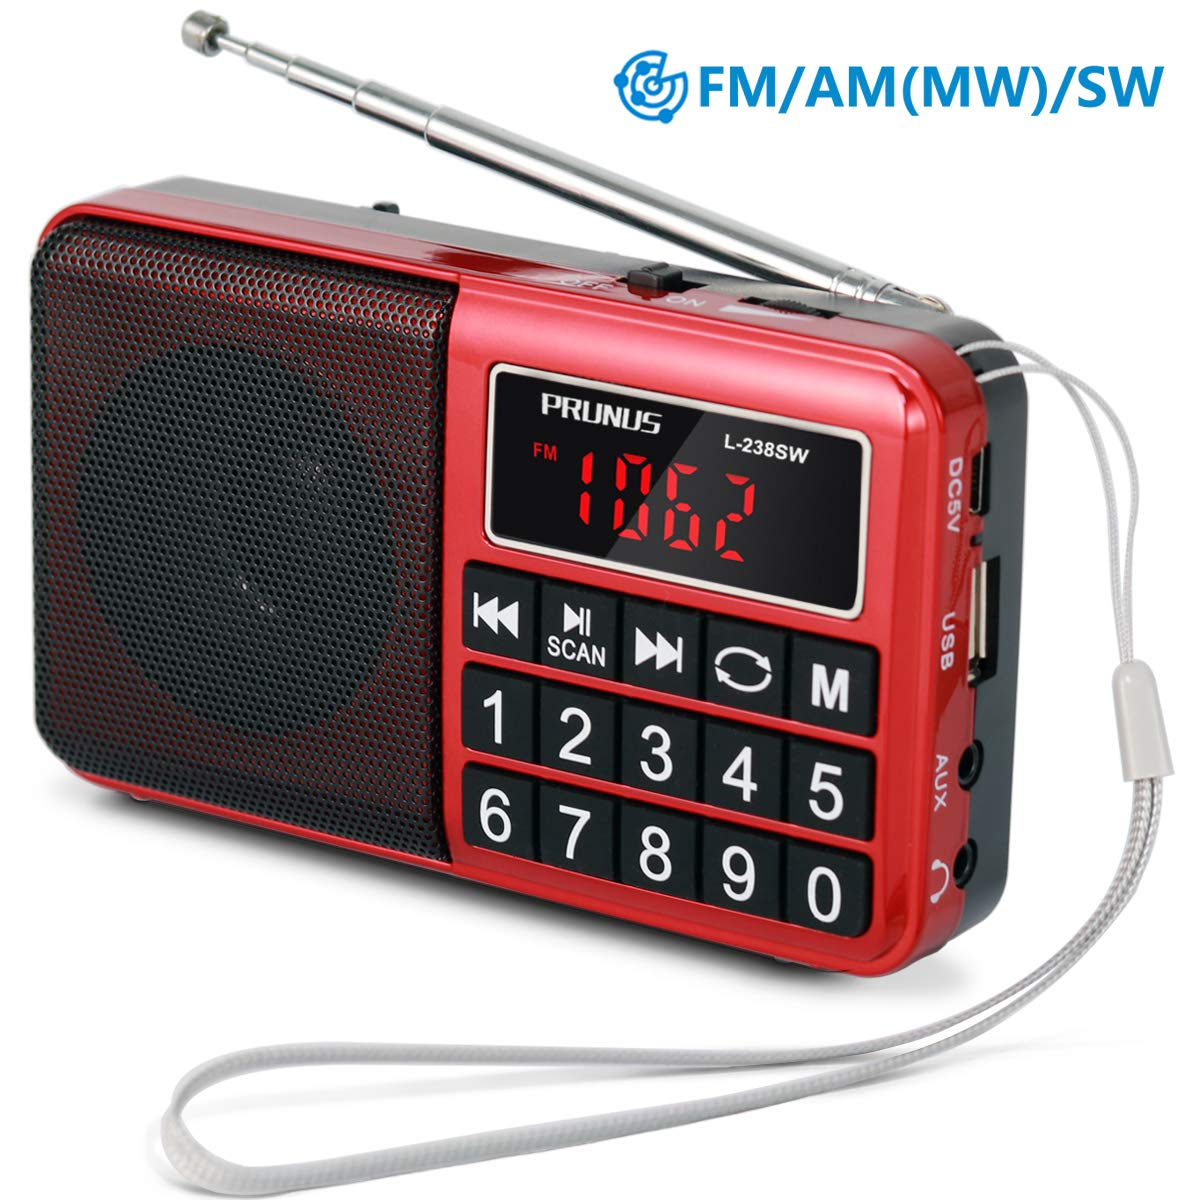 PRUNUS Portable SW / FM / AM (MW) MP3 Radio with Neodymium Speaker. Large Button and Large Display. Stores Stations Automatically (DO NOT SUPPORT MANUAL MEMORY/DELETE STATIONS). Supports the Following: Flash Drive / Micro SD Card / TF Card (8GB, 16GB, 32GB